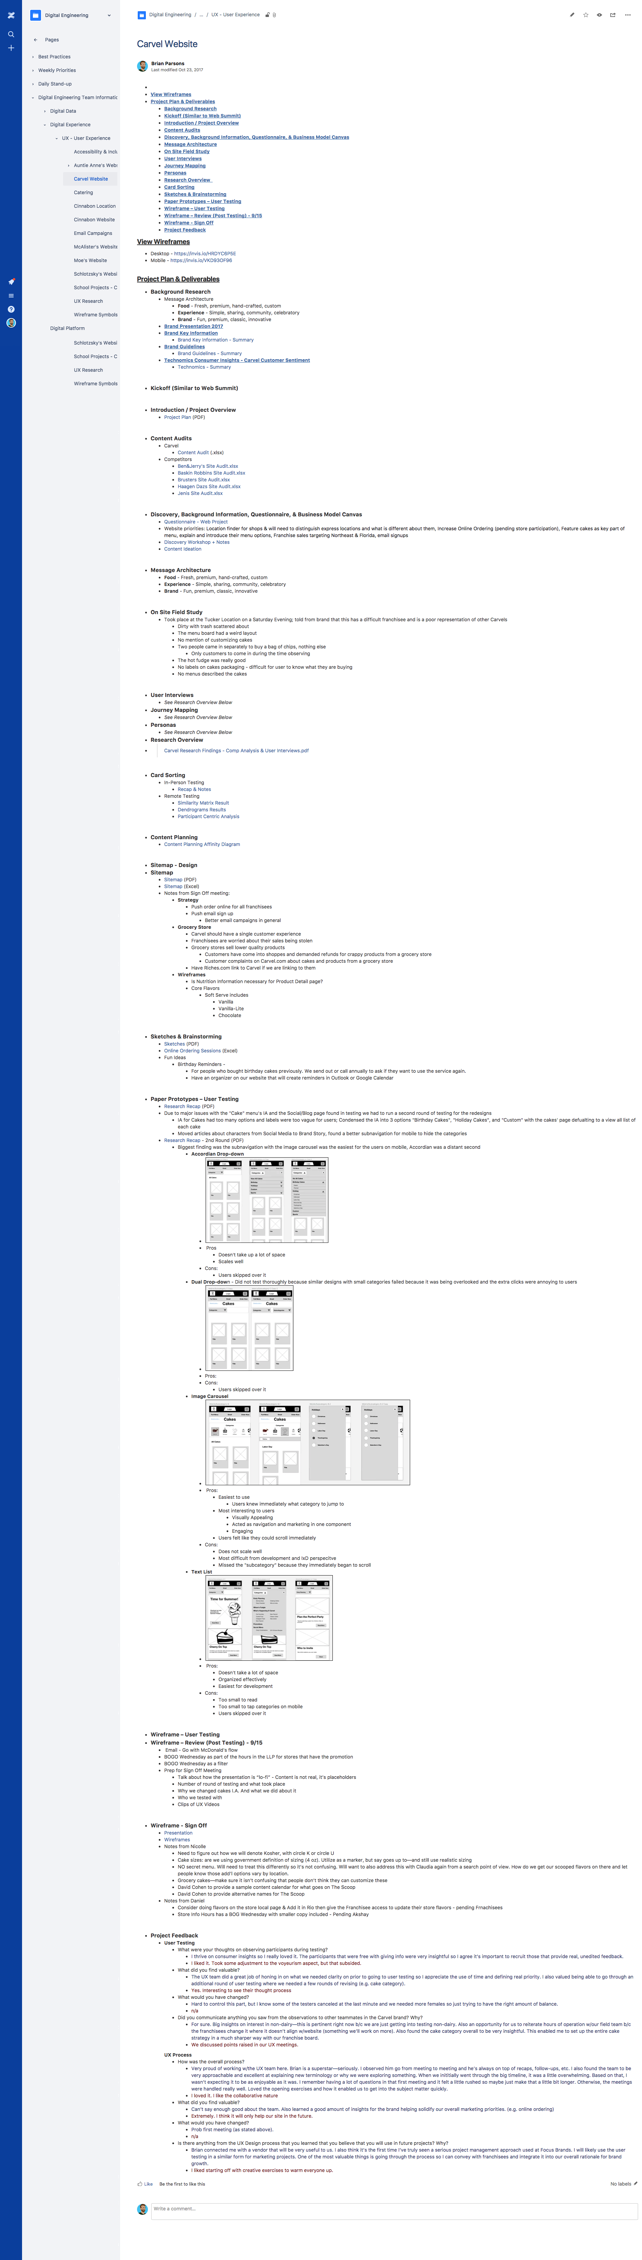 Documentation Example - We were able to use Confluence as are repository for UX documentation which allowed our entire team to access the information and was incredibly easy to use.